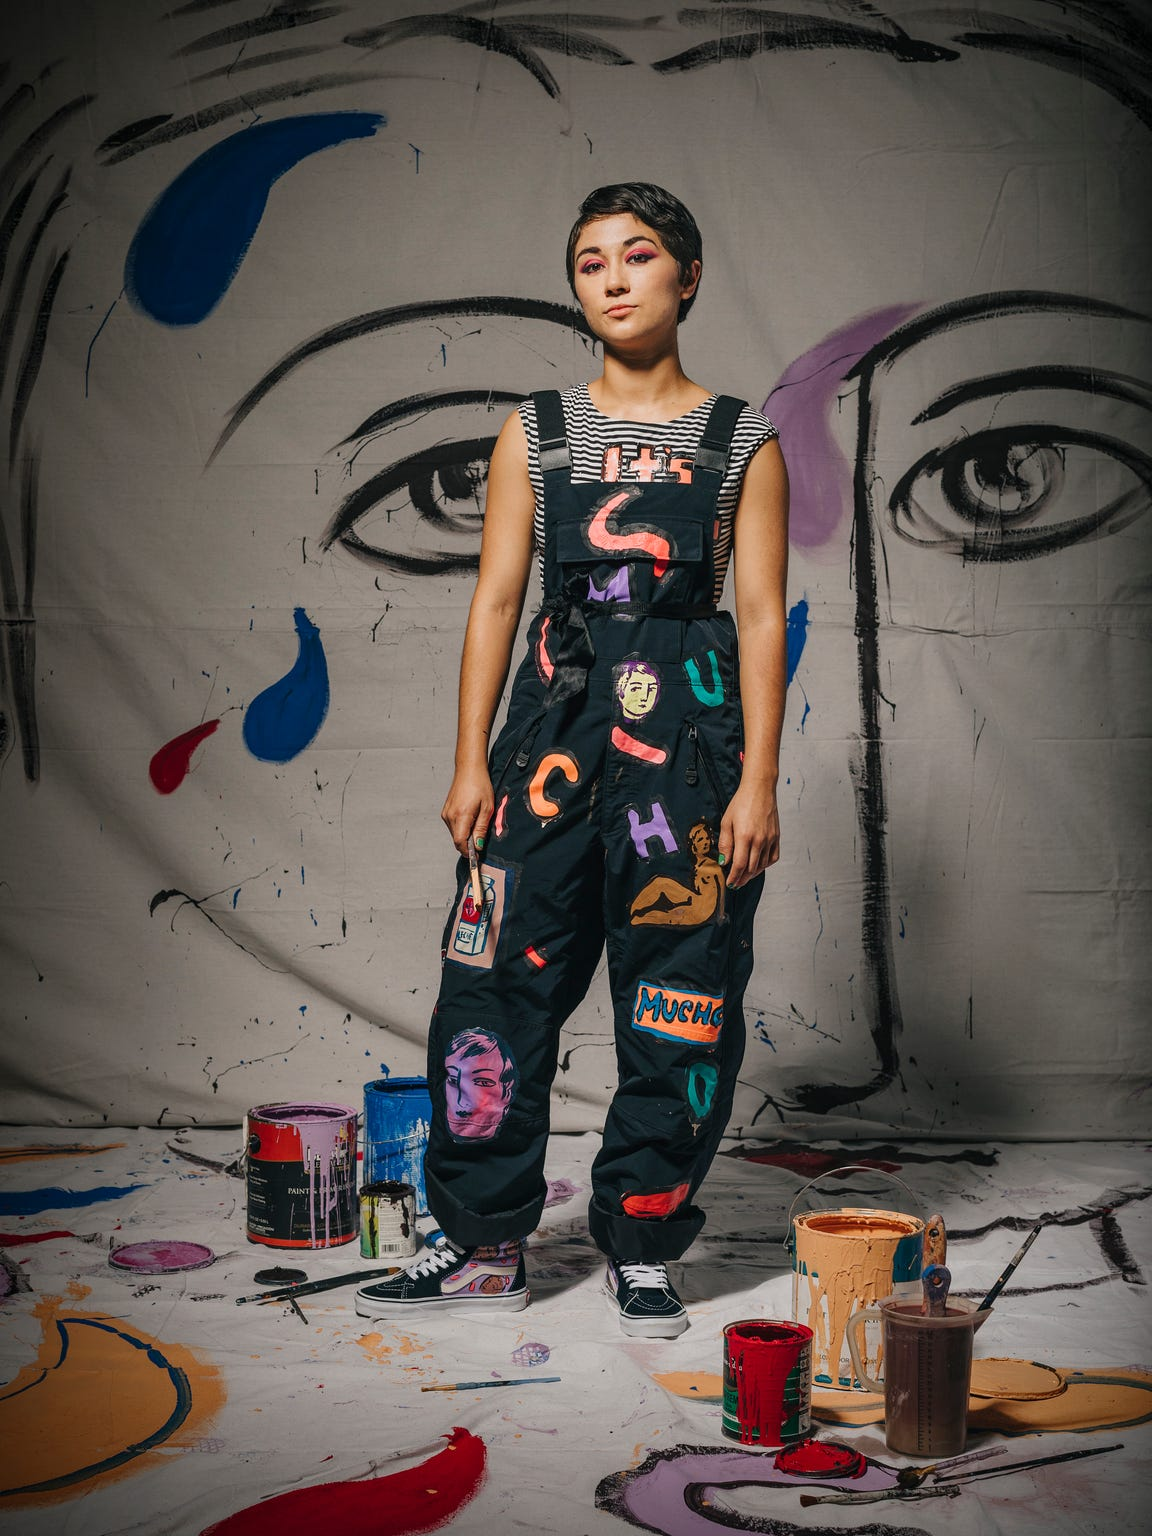 Sofia Enriquez wearing her own hand-painted shirt,